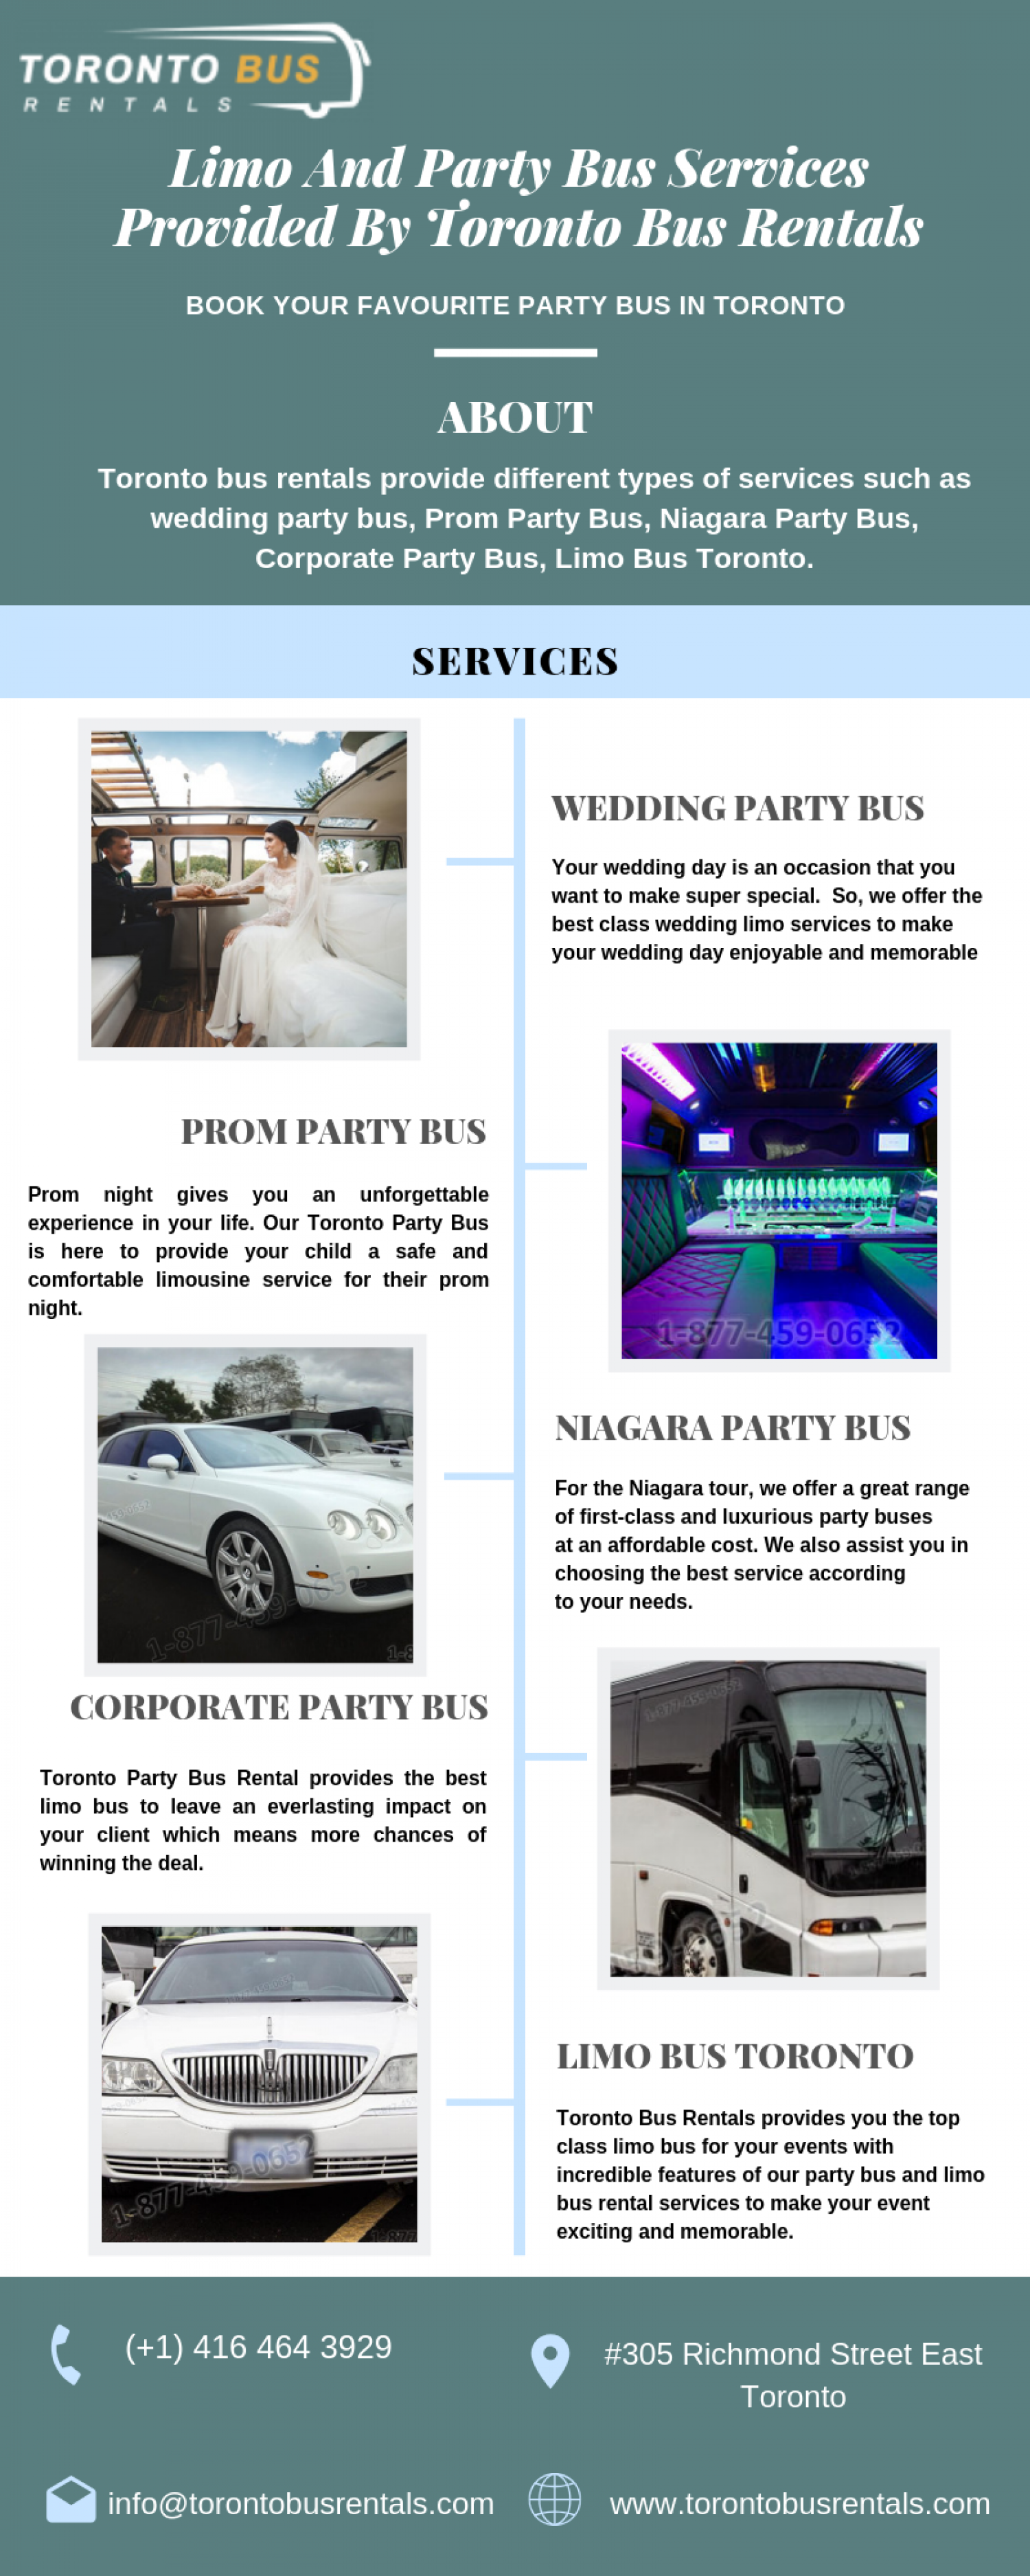 Limo and Party Bus Services Provided by Toronto Bus Rentals Infographic